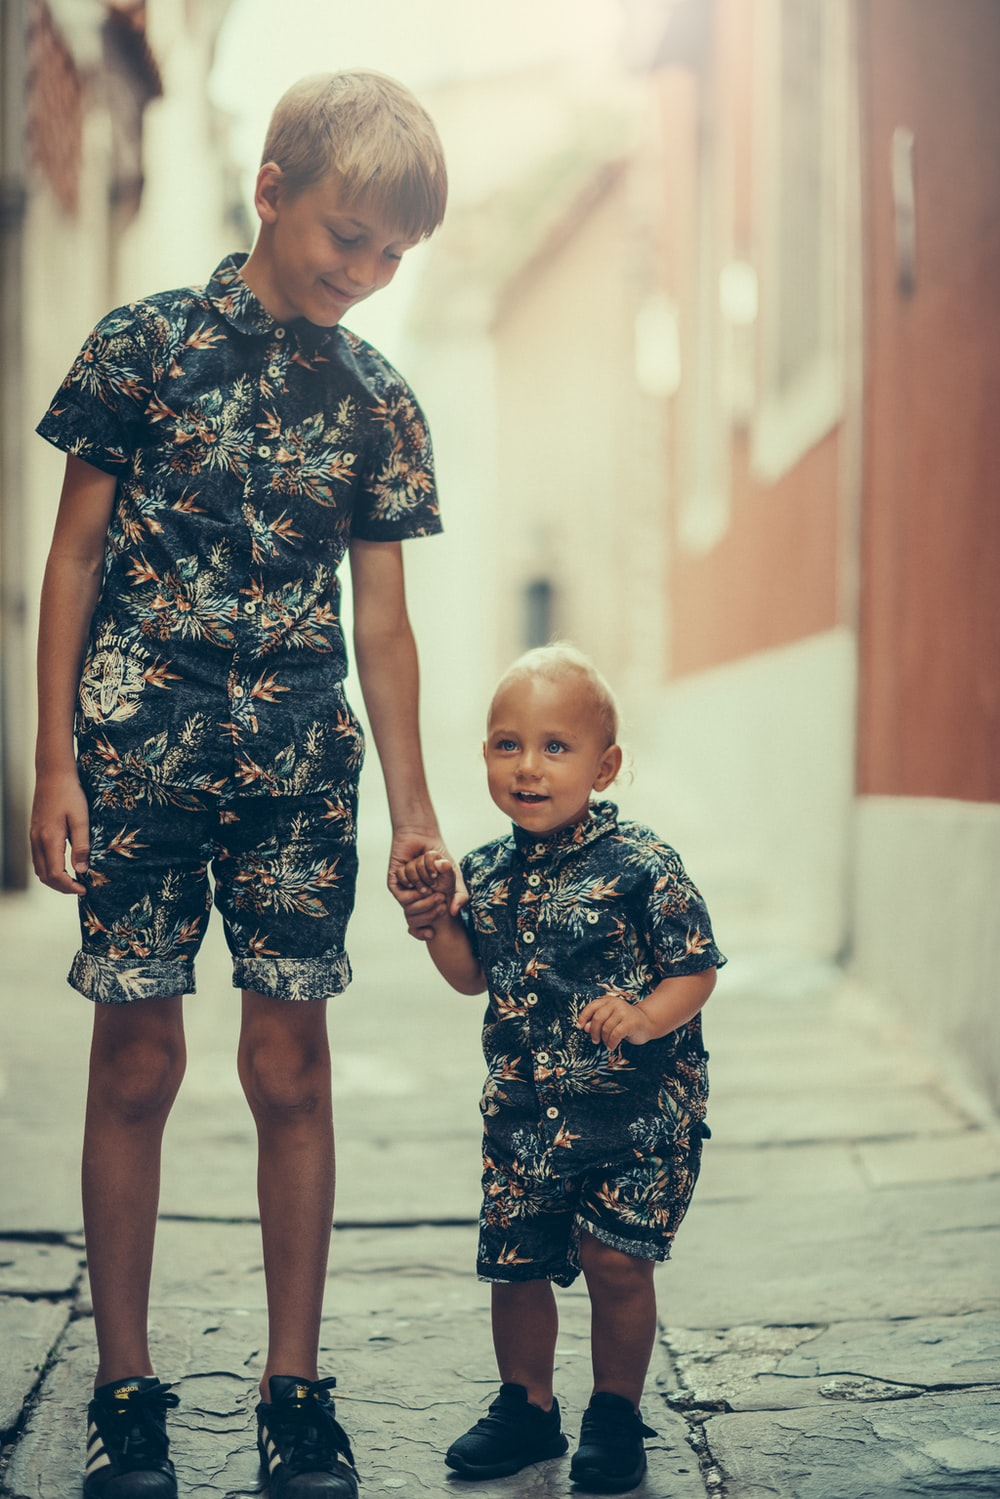 matching pair of boy's black and gray floral collared shirt and shorts standing on gray concrete area